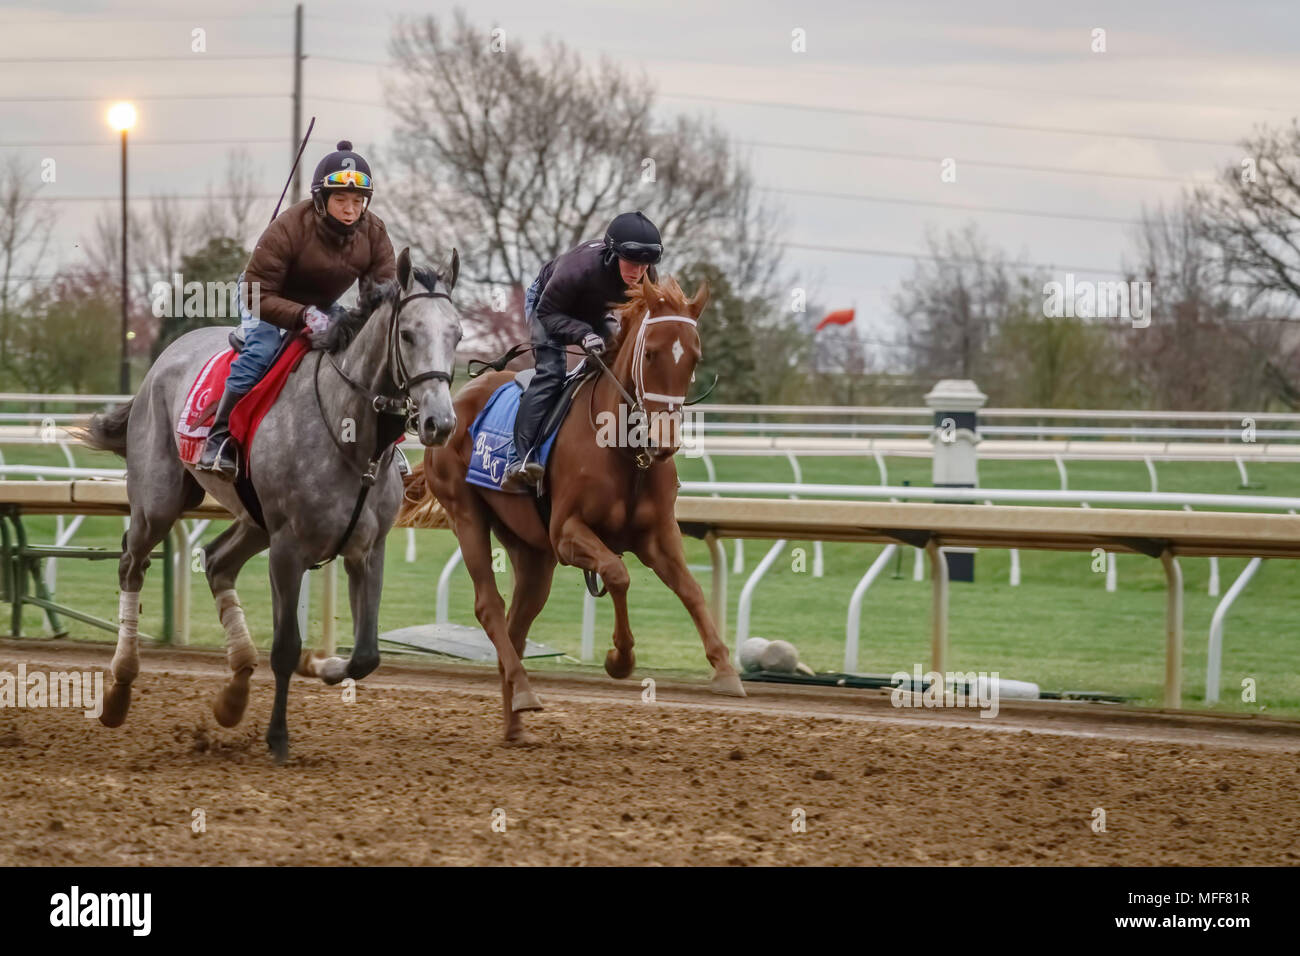 LEXINGTON, KENTUCKY/USA - APRIL 19, 2018: Two exercise riders on thoroughbreds during a workout early on a chilly morning at Keeneland Race Course. - Stock Image